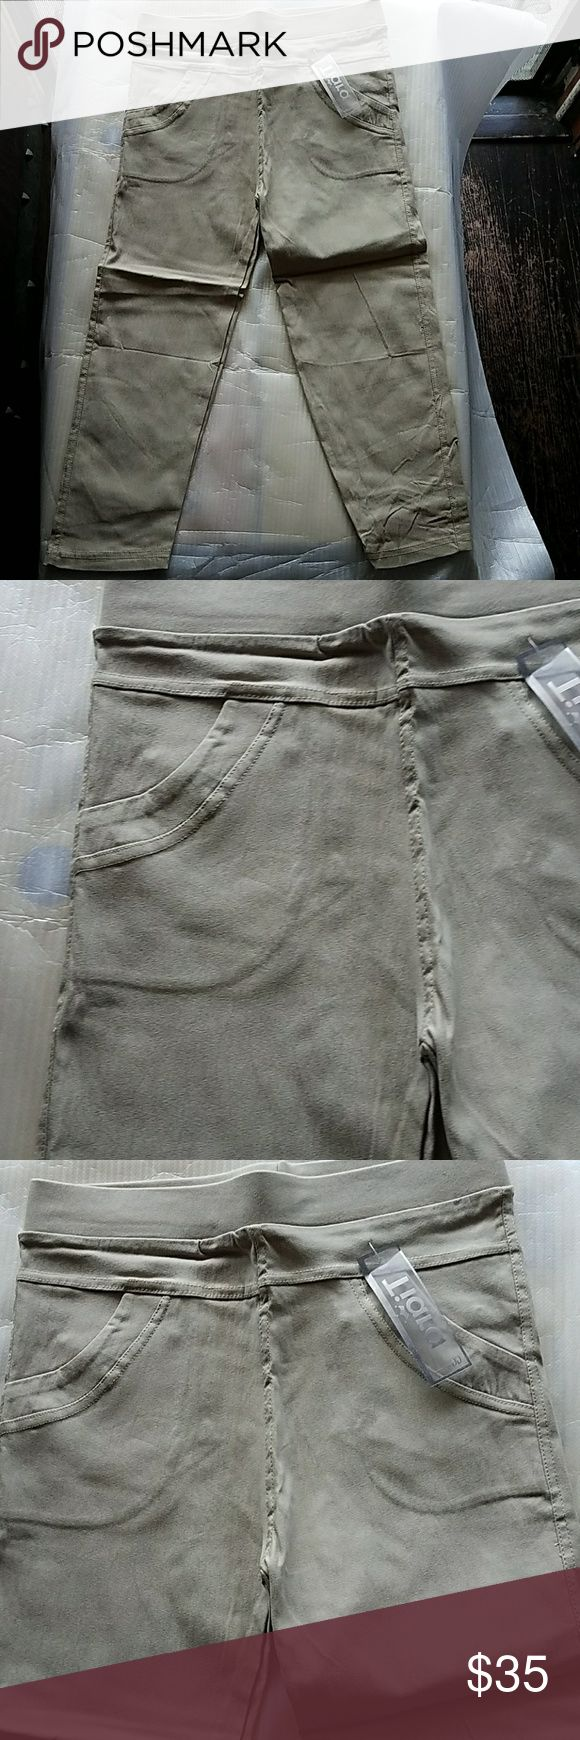 """New Khaki Capri Jeggings New Khaki Capri Jeggings  New with tags It says one size fits all but only fit Small/Medium  Material 70%cotton 25%polyester 5%spandex  Waist measures approximately is 13"""" Rise measures approximately 11"""" Inseam measures approximately 17""""  I do bundle and offers are welcome Boutique Pants Capris"""